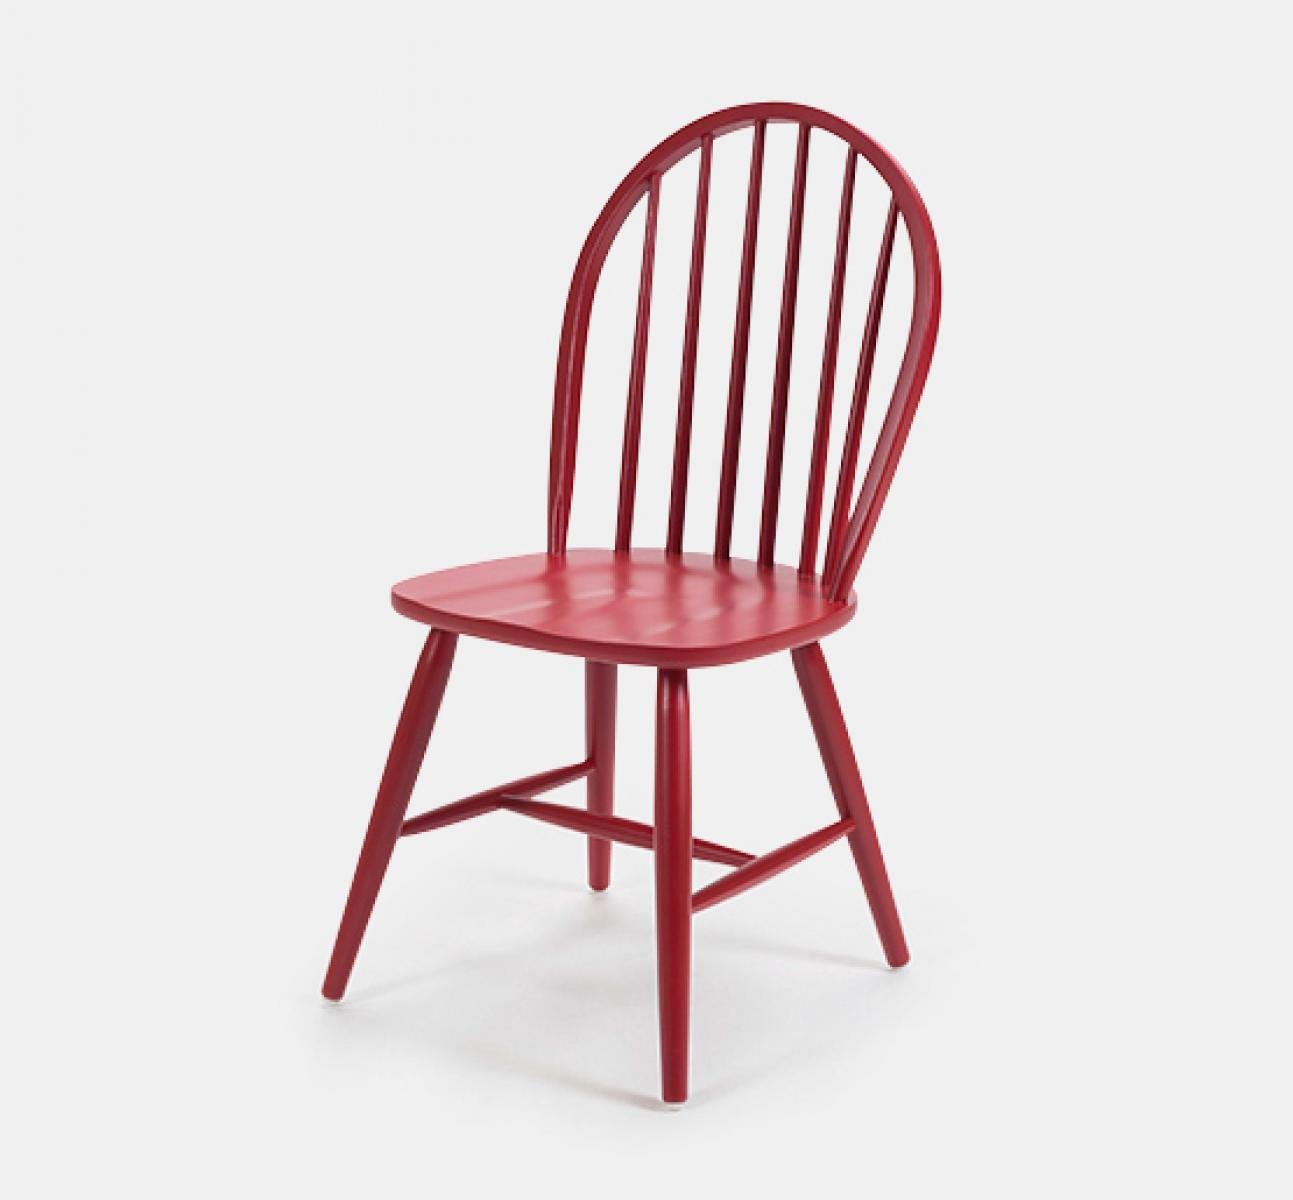 Spindle curved back wooden chair traditional style